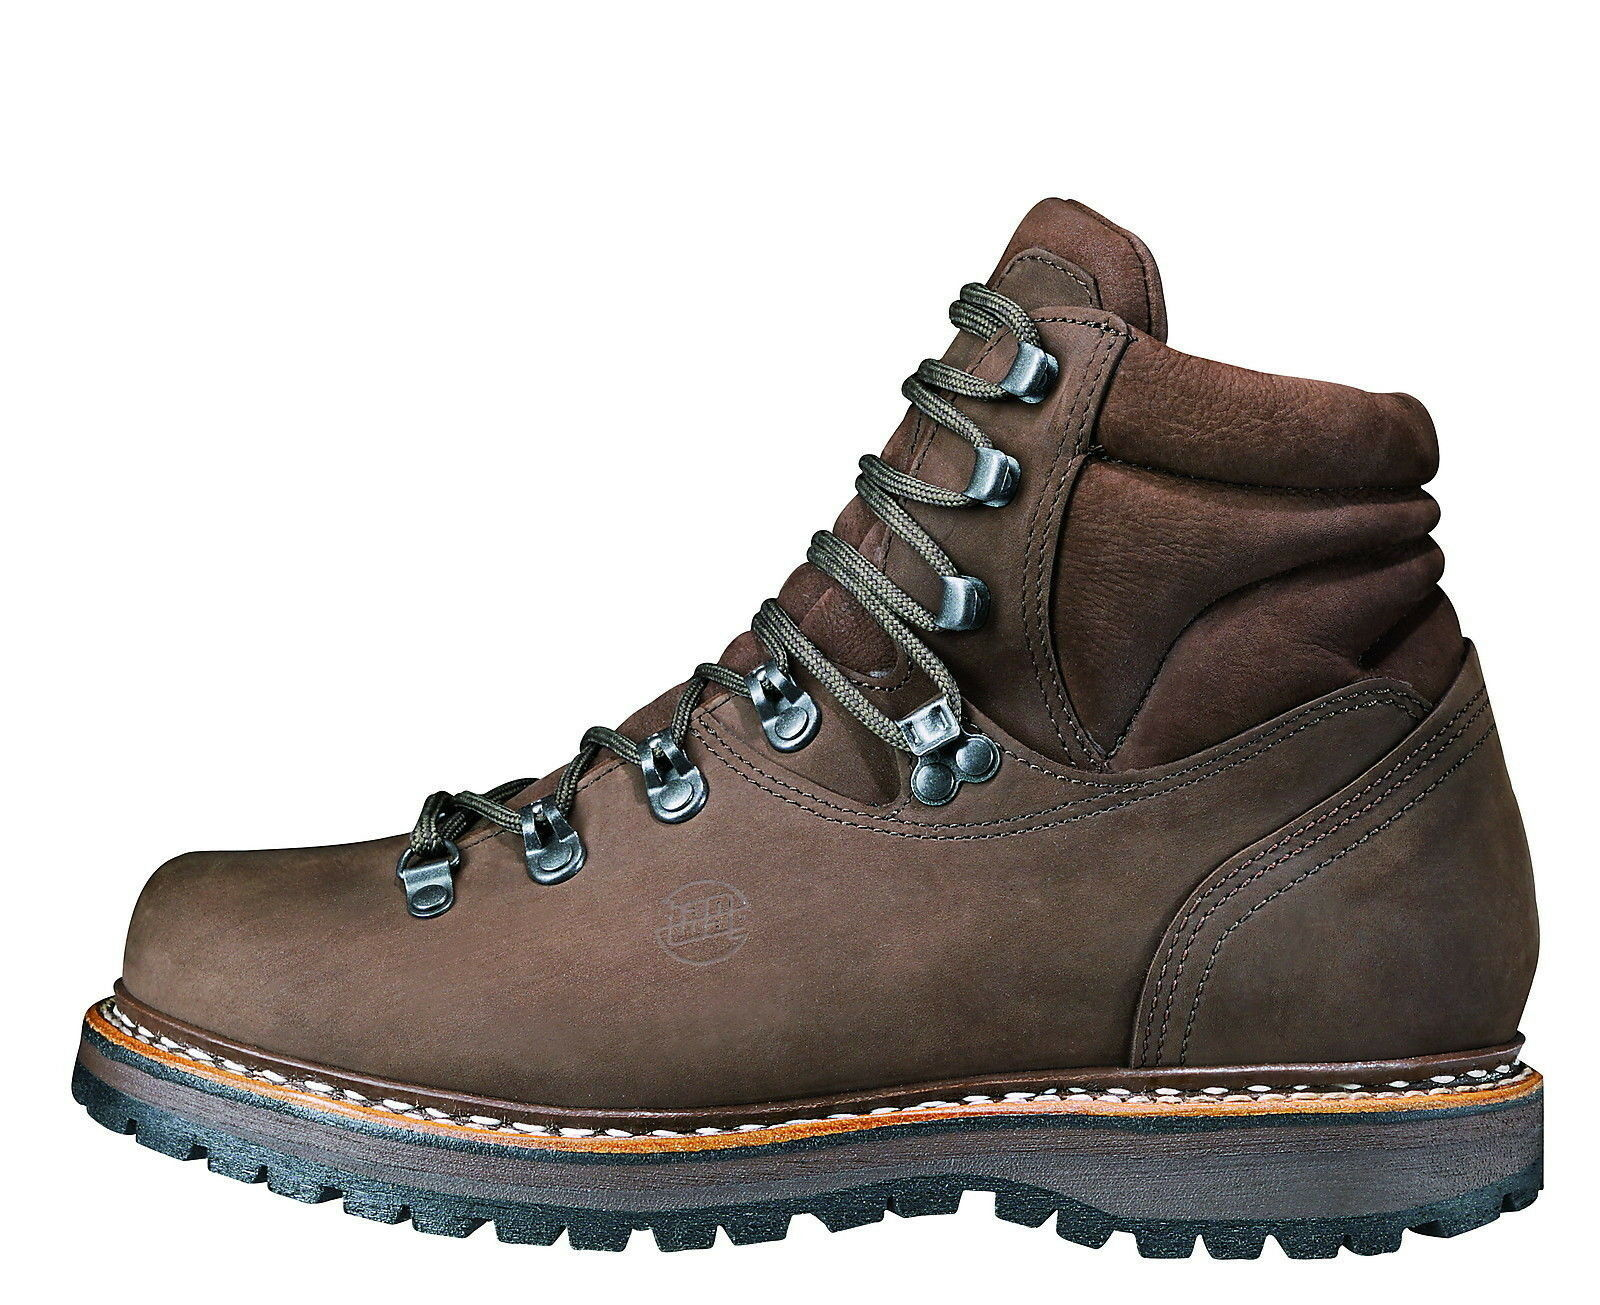 Hanwag Double-Stitched Classic Bergler Leather Size 12 - 47 Maroon